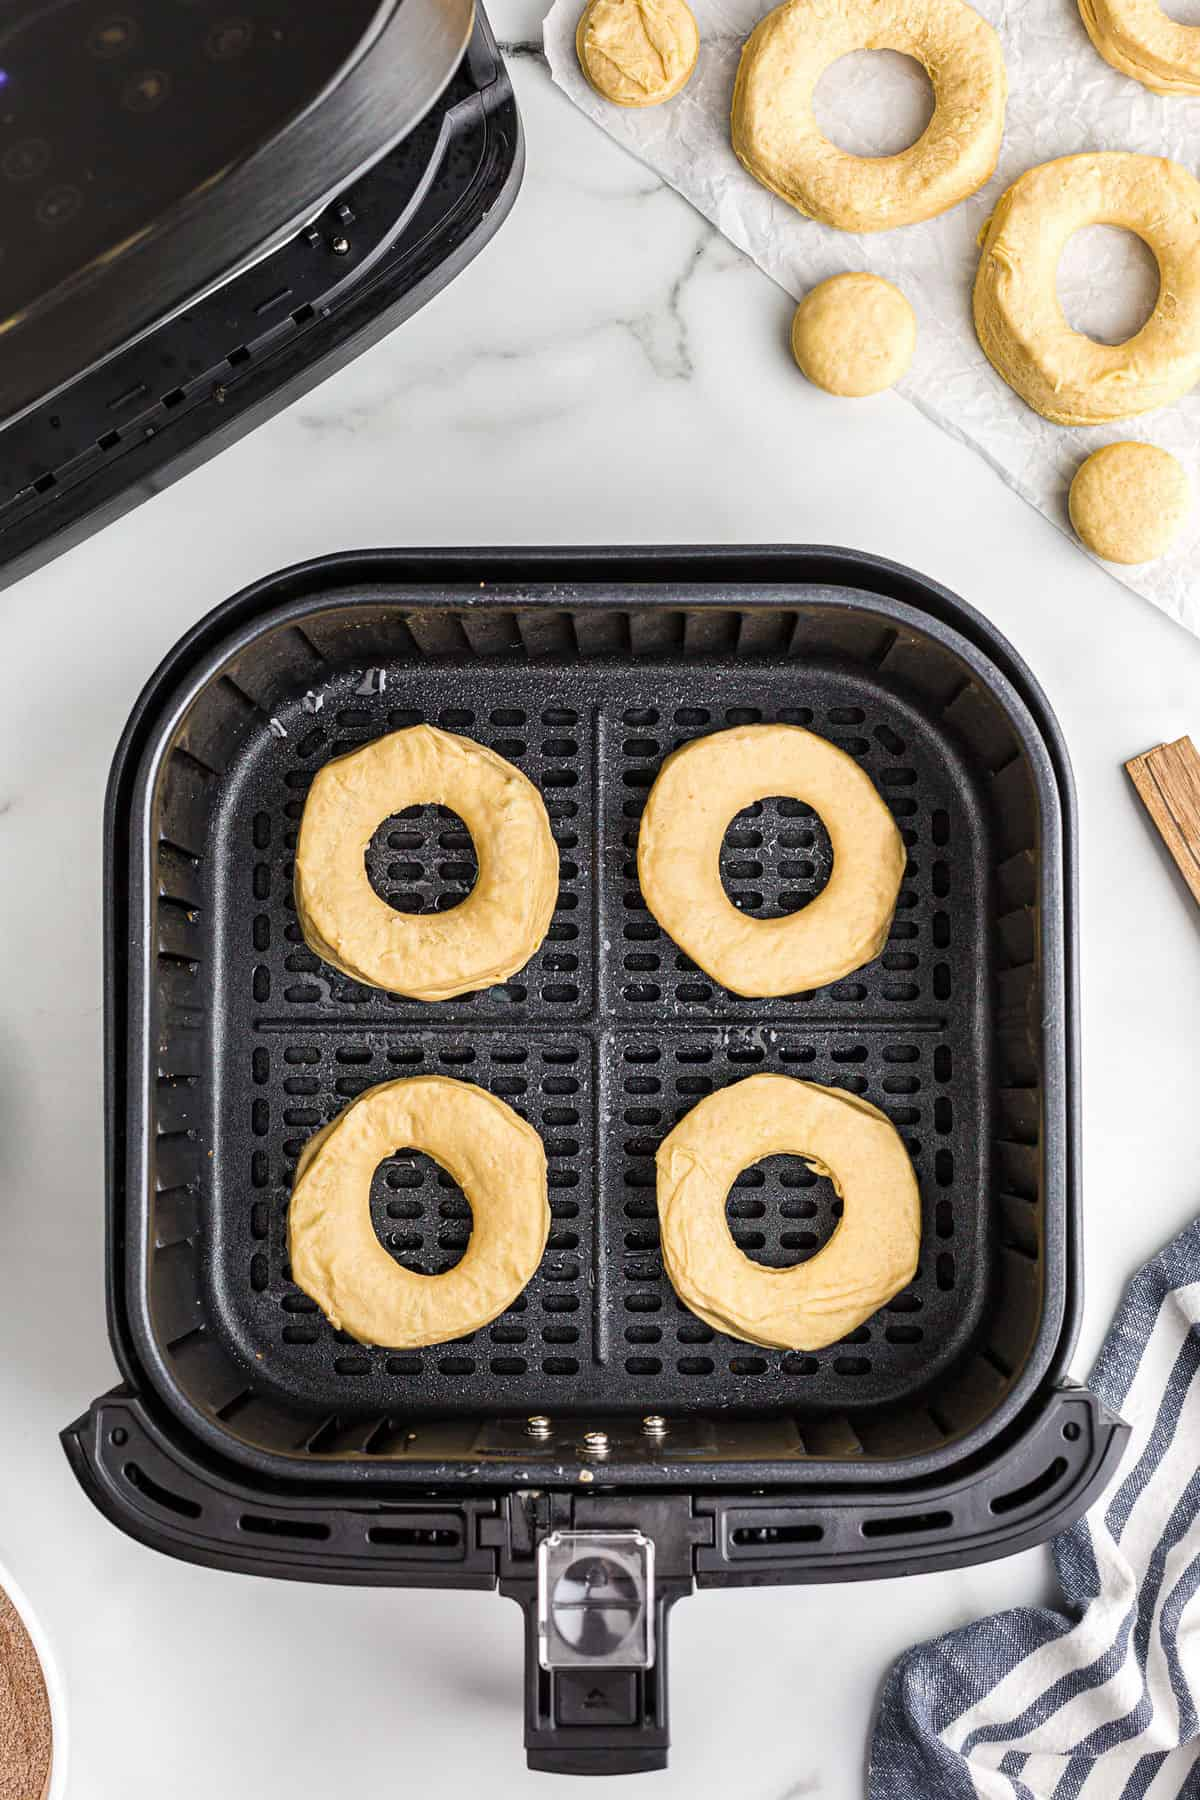 Place cookies in the air fryer basket